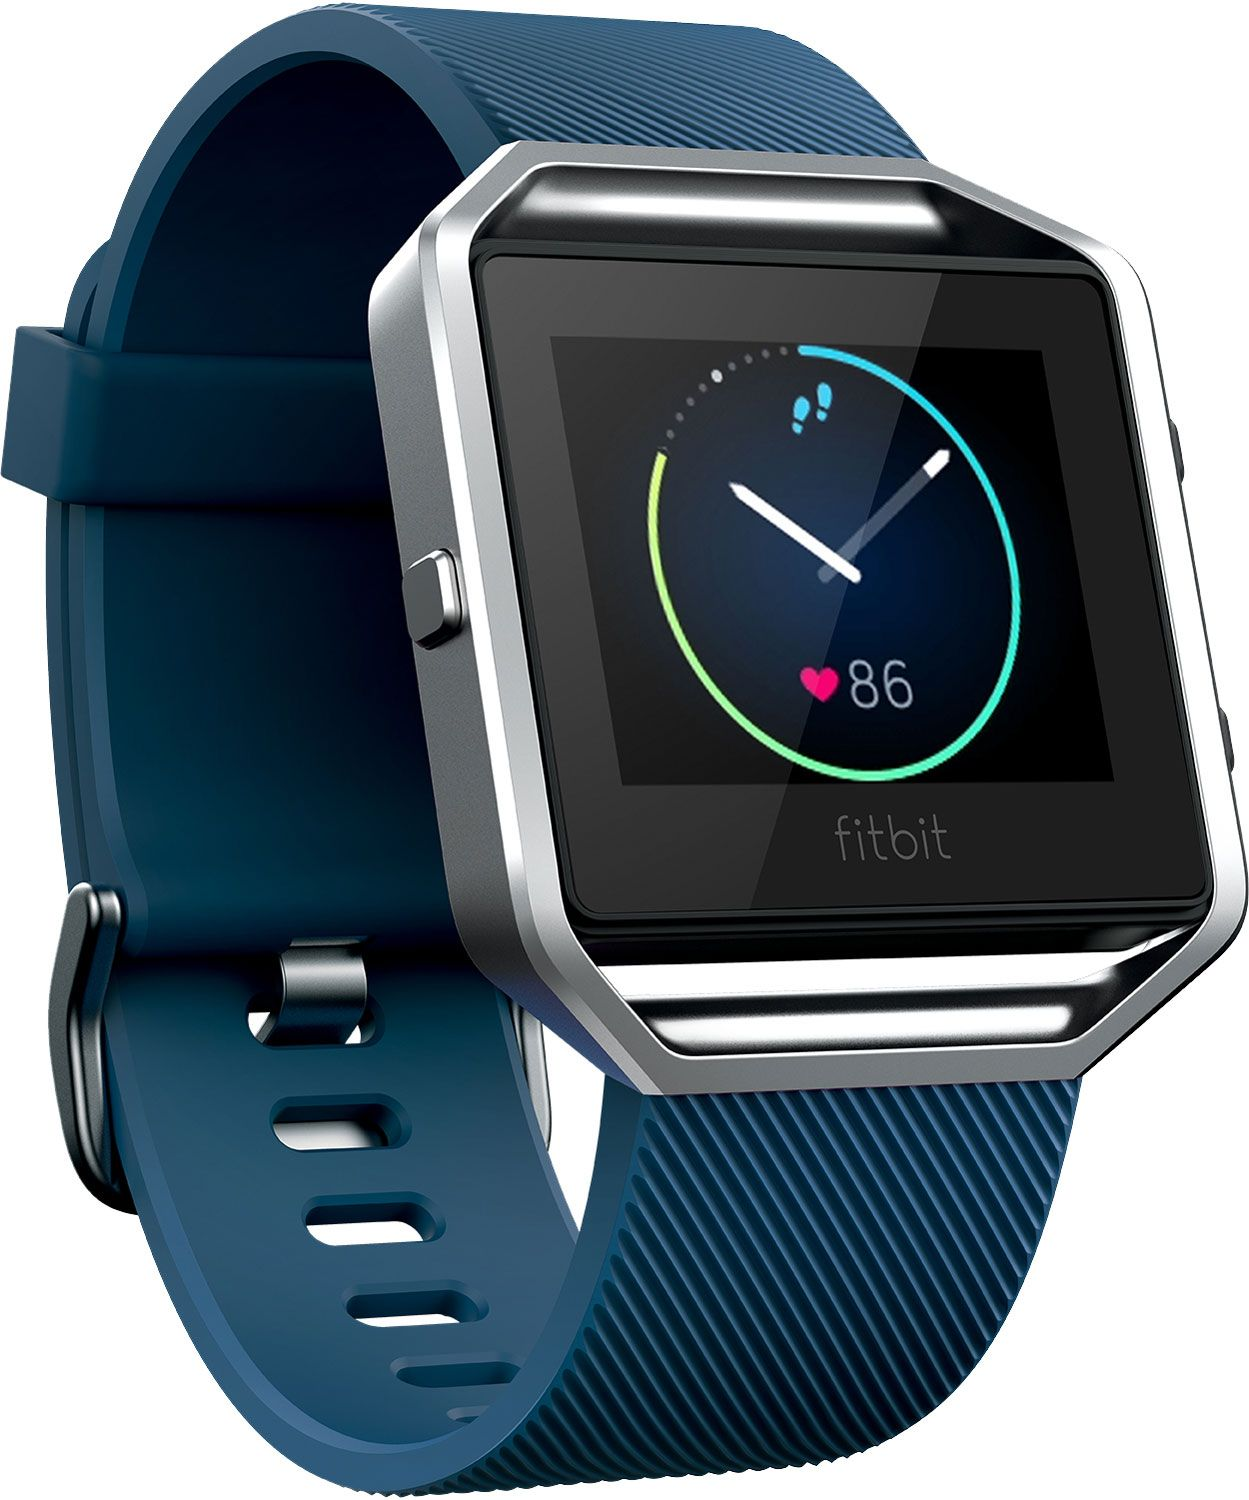 sport watches for electronics dick s sporting goods product image · fitbit blaze smart fitness watch blue plum black